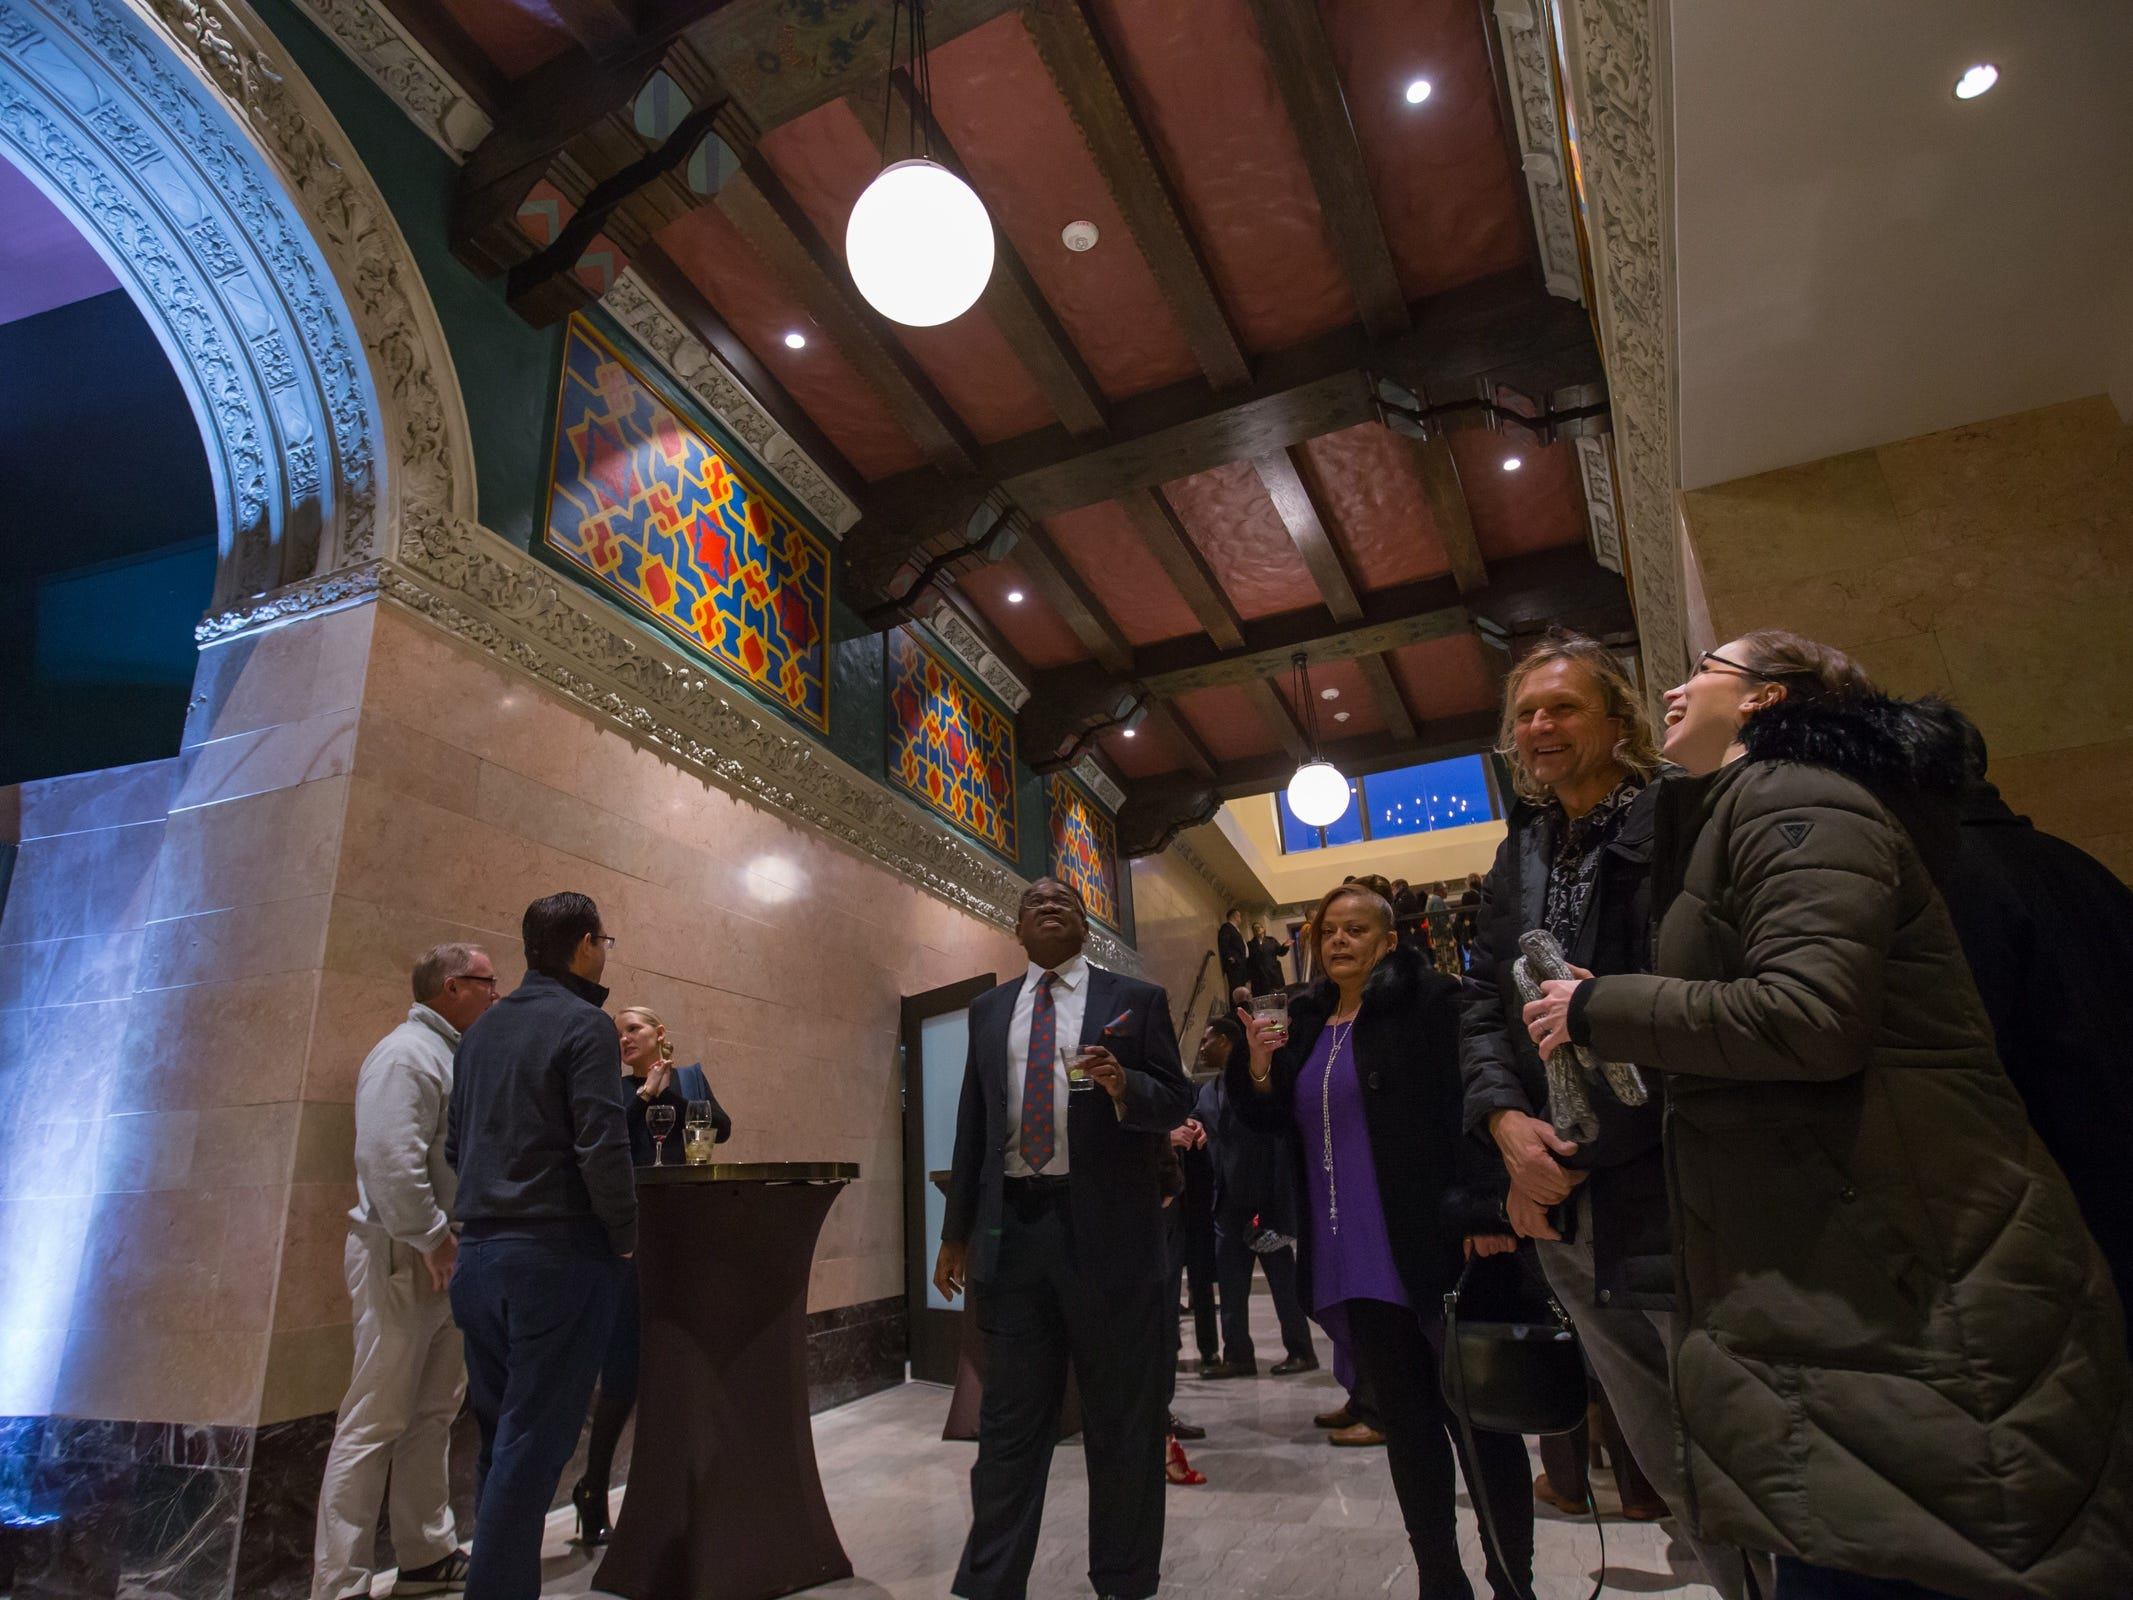 People gather to see the fully restored Great Hall of he historic Metropolitan Building in downtown Detroit on Monday, December 17, 2018.